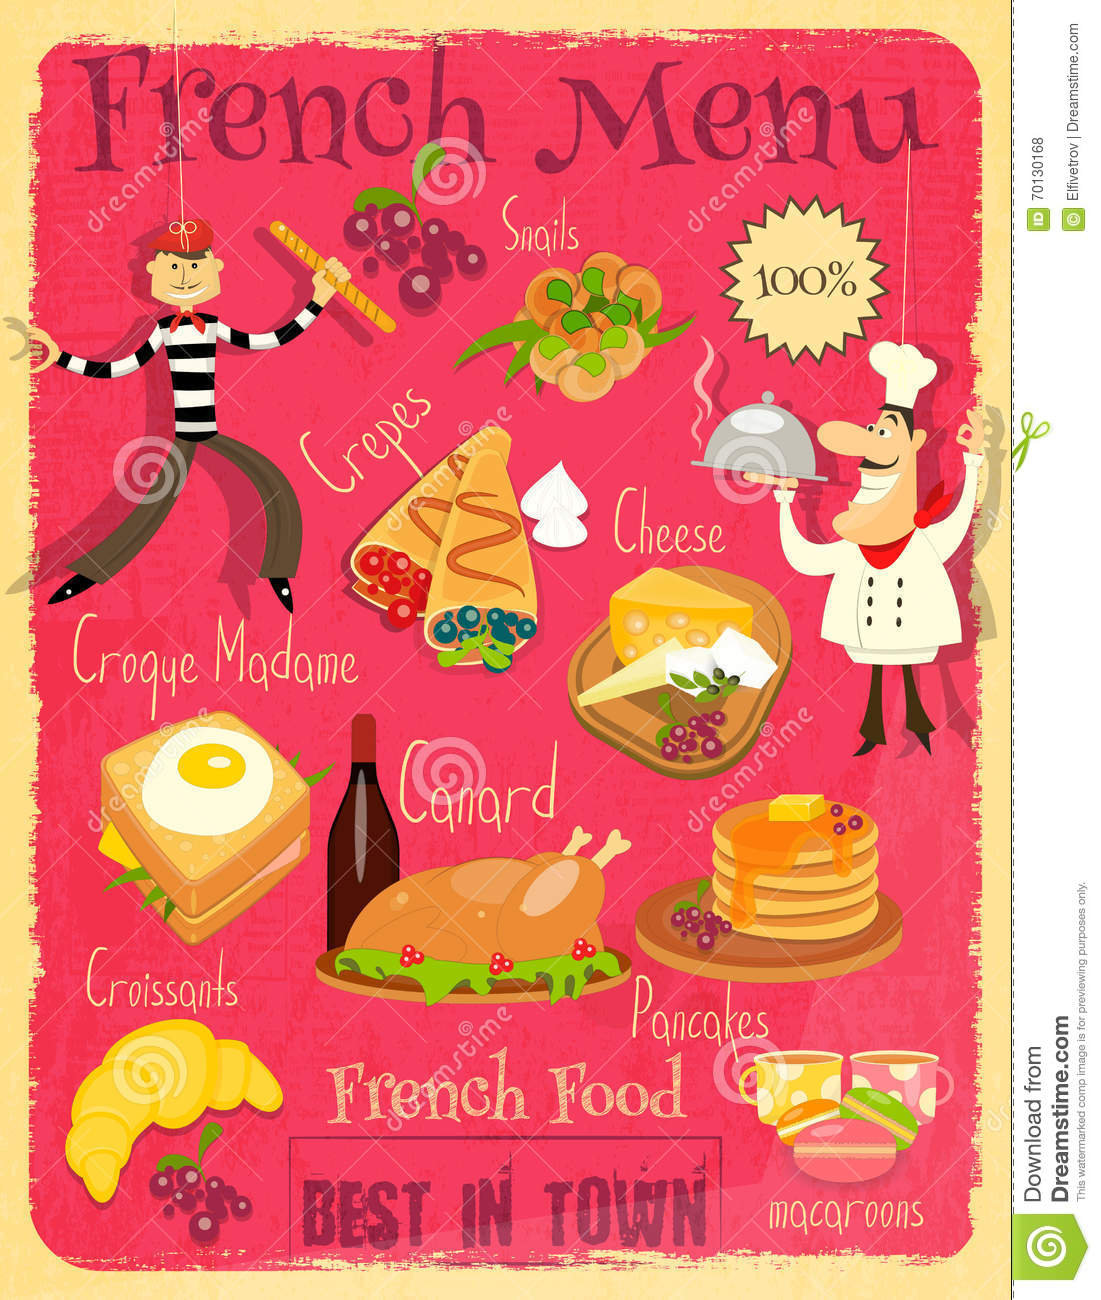 Maison Contemporaine Bois Toit Plat : French Food Menu Card with Traditional Meal Retro Vintage Design